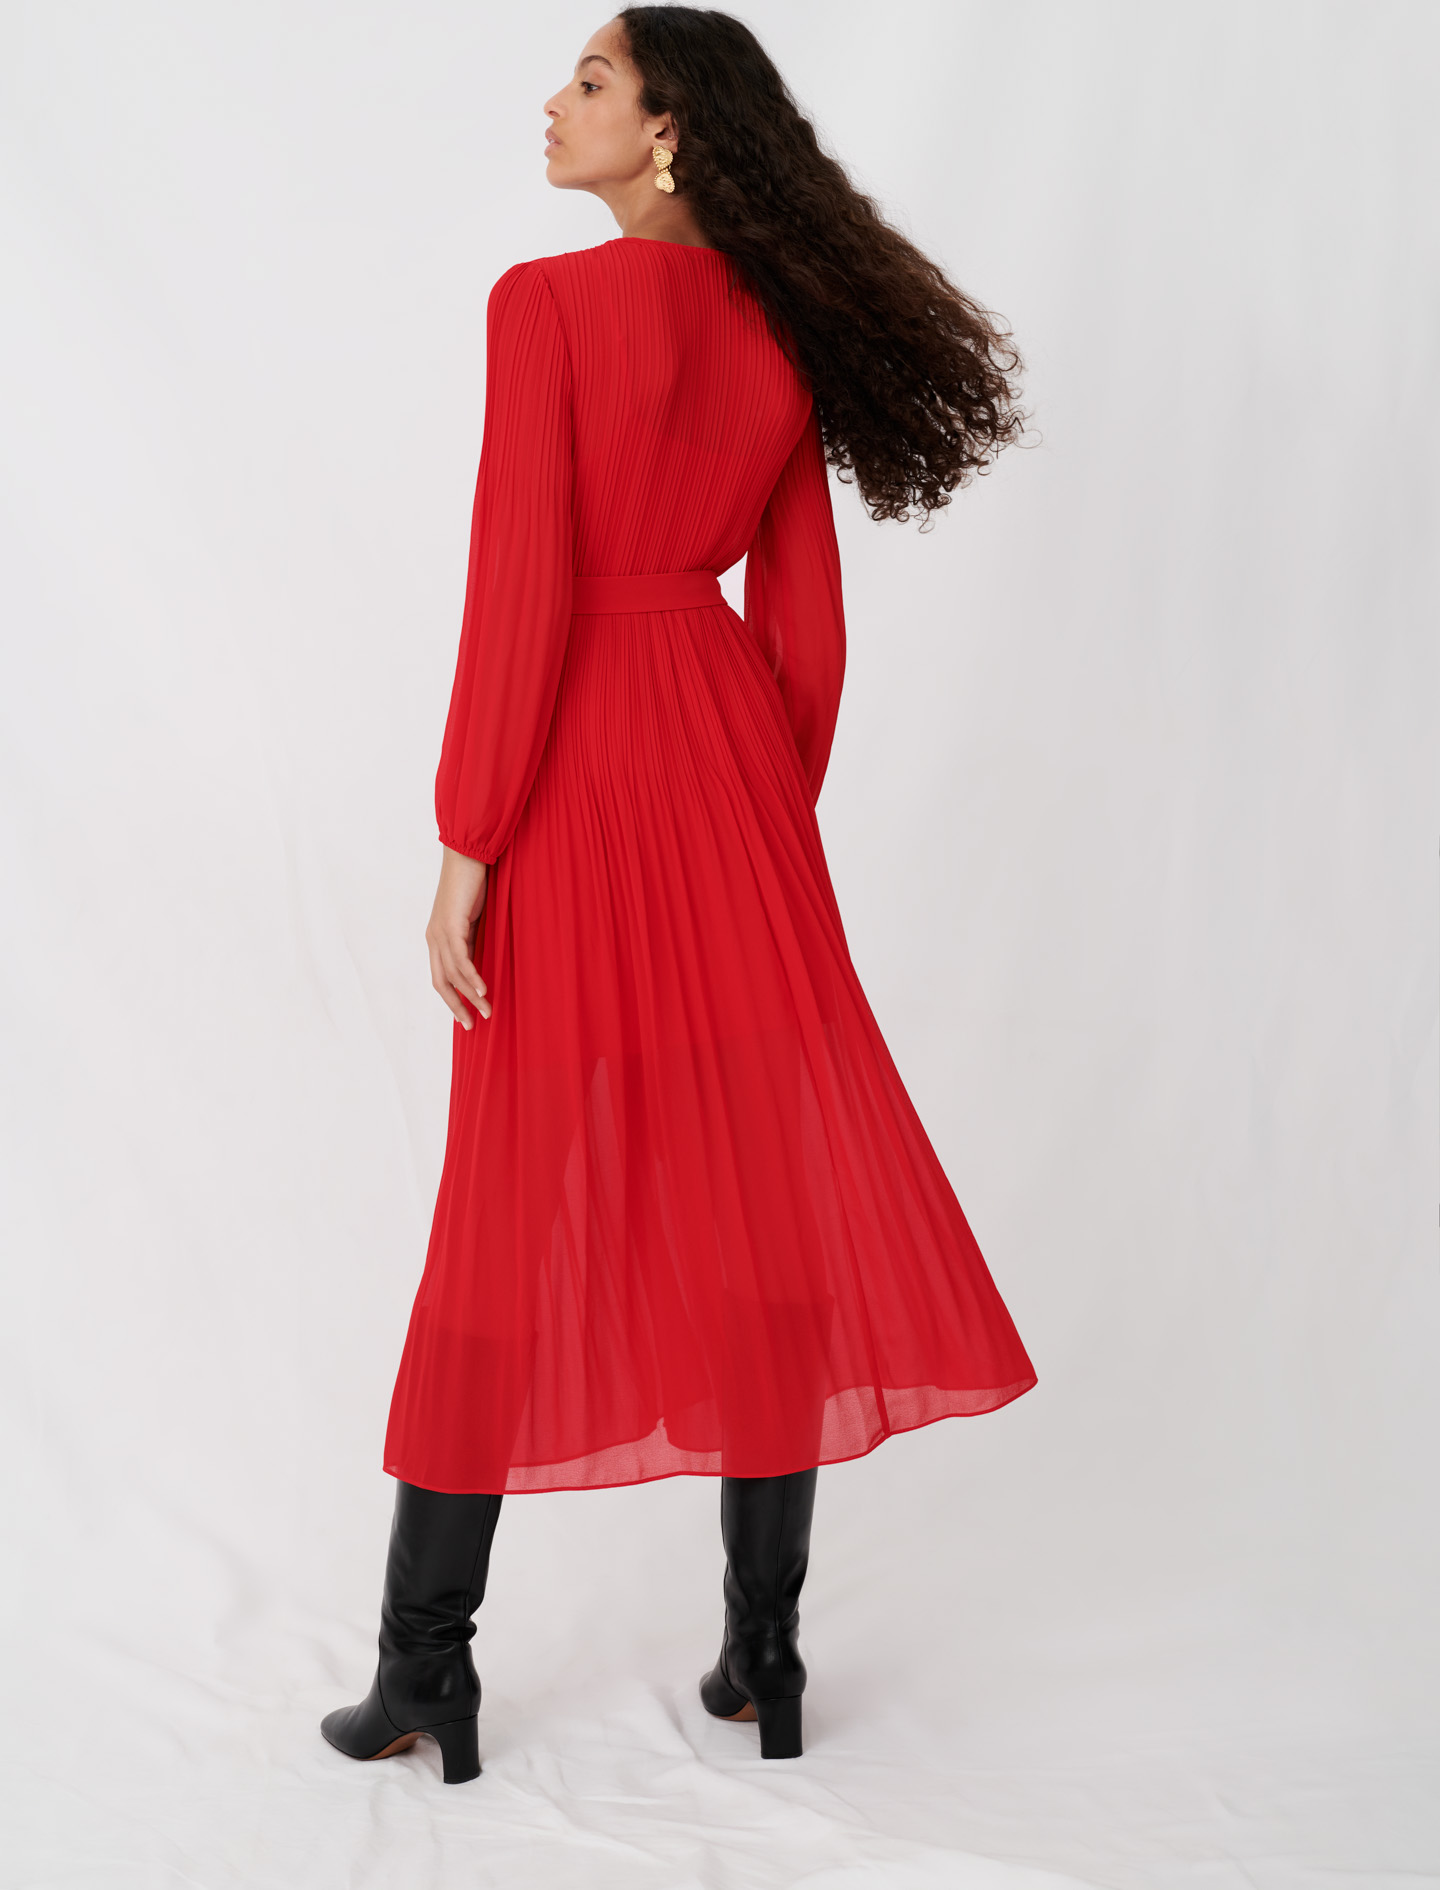 Pleated and belted muslin dress - Red